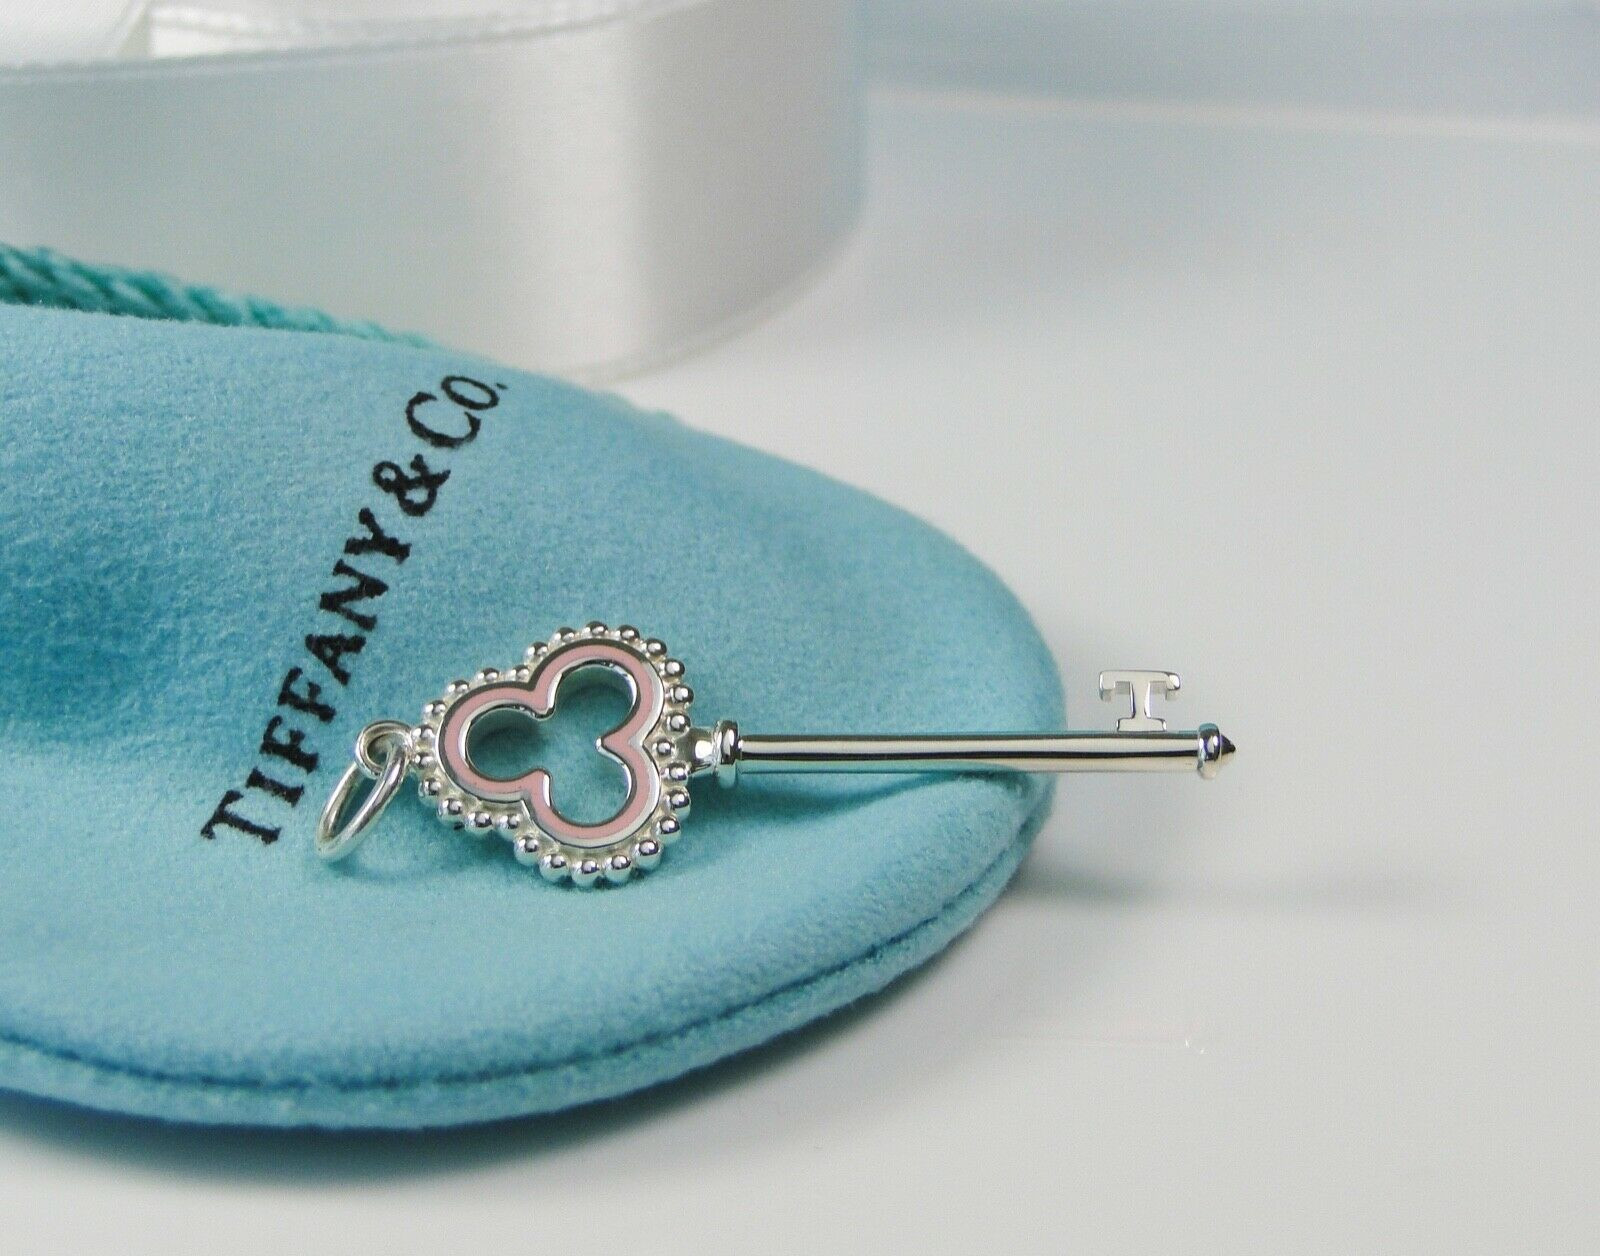 86bbfb1ba9515 Tiffany & Co Silver Bead Pink Enamel Open Trefoil Key Pendant Charm Retired